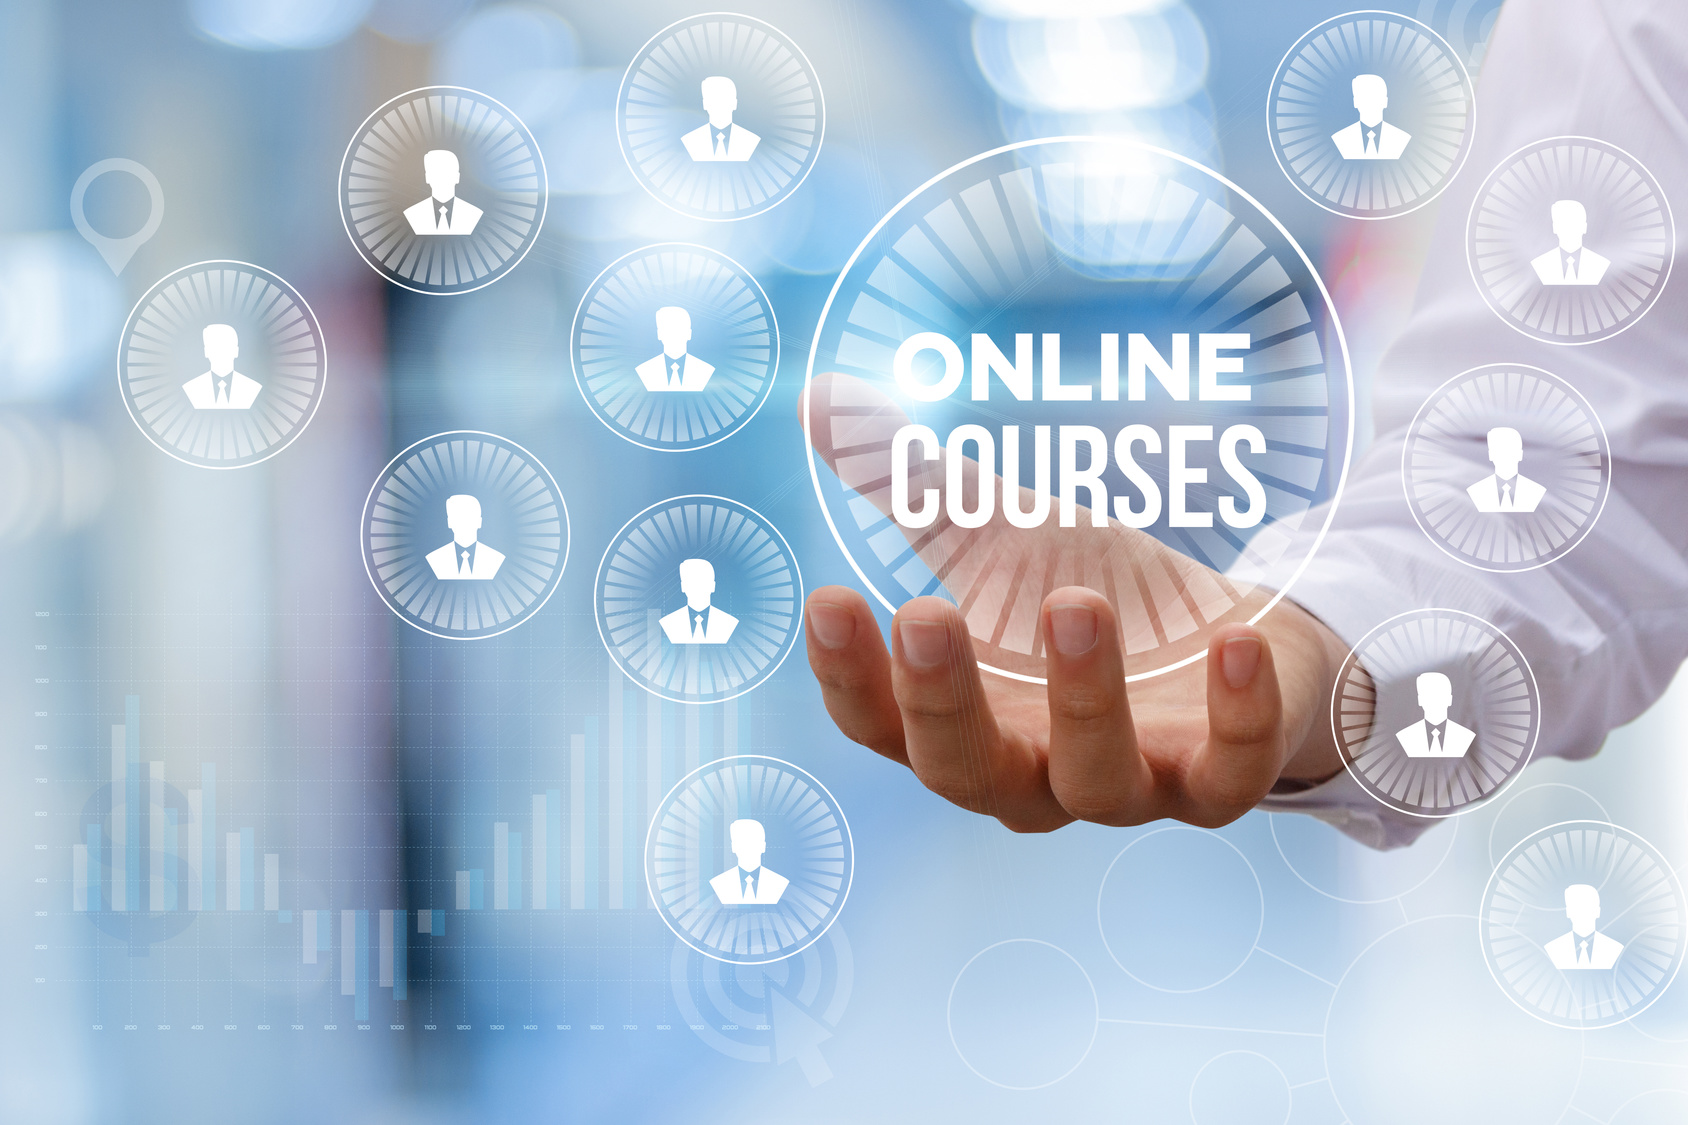 Issa Asad Shares 5 Inexpensive Udemy Courses to Help You Make Thousands